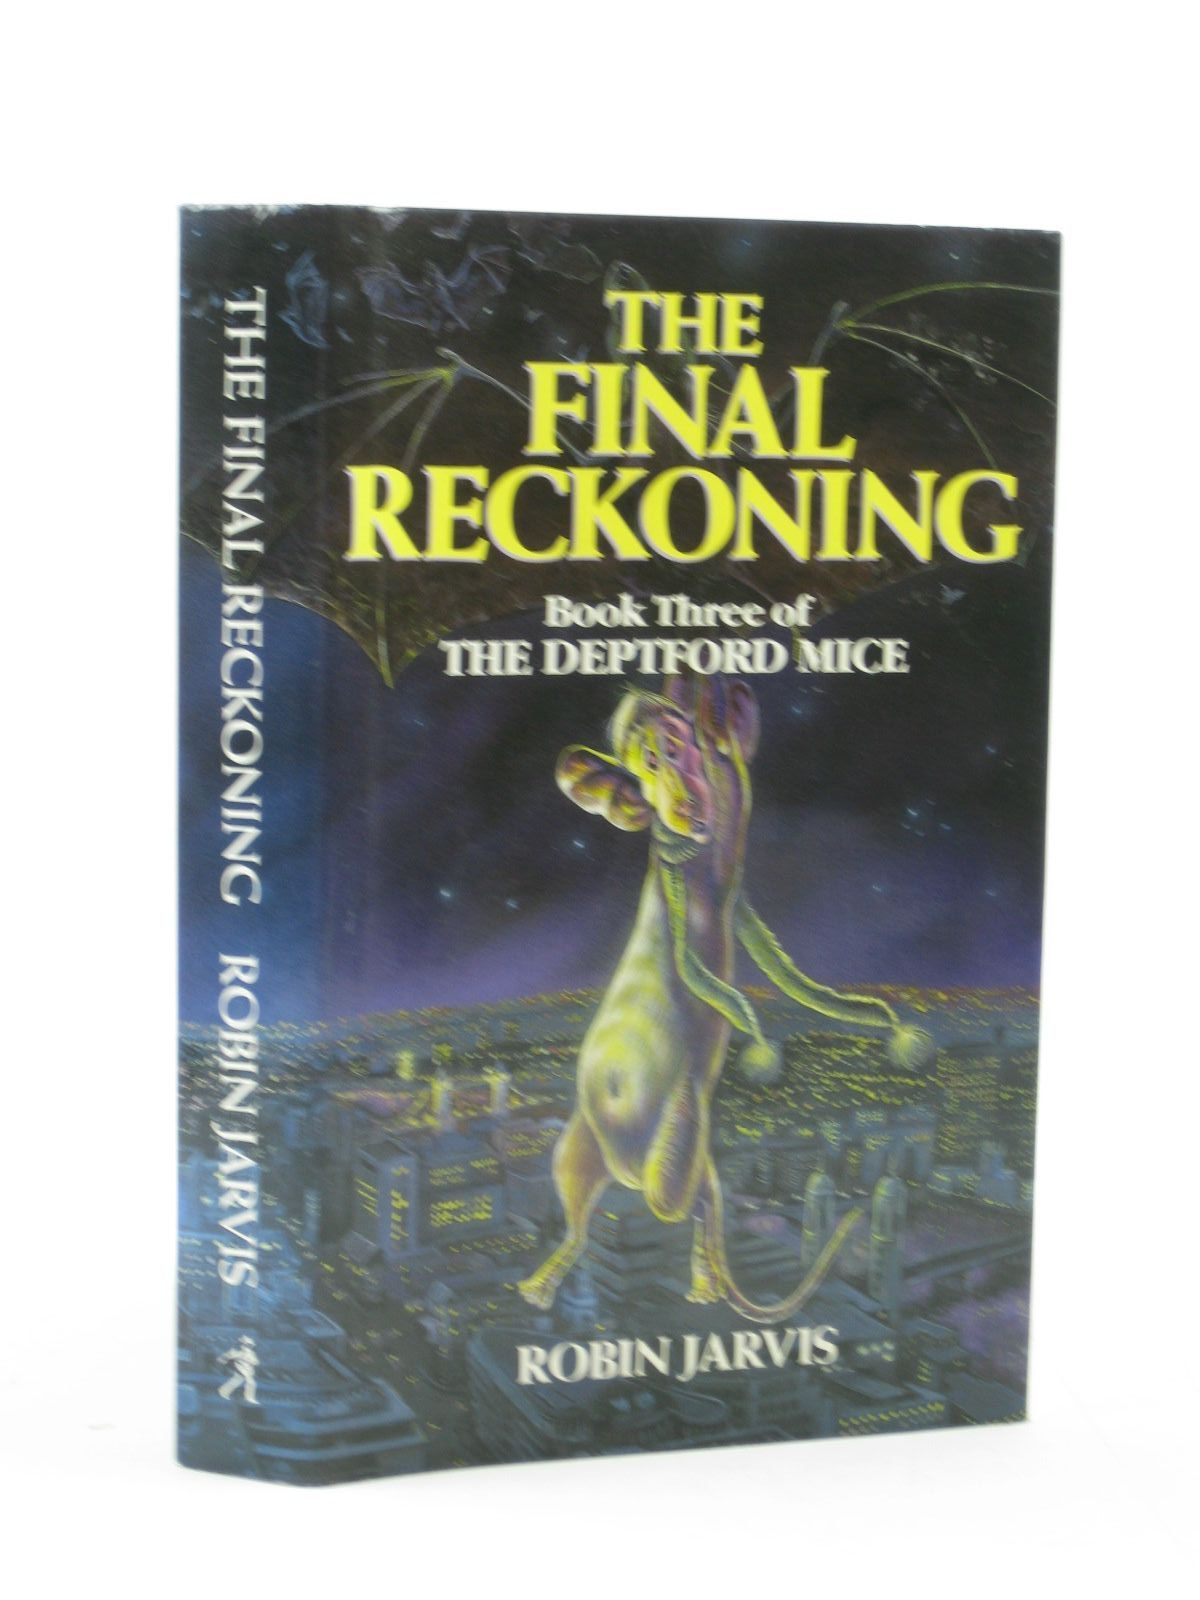 Photo of THE FINAL RECKONING written by Jarvis, Robin illustrated by Jarvis, Robin published by Simon & Schuster Young Books (STOCK CODE: 1313396)  for sale by Stella & Rose's Books